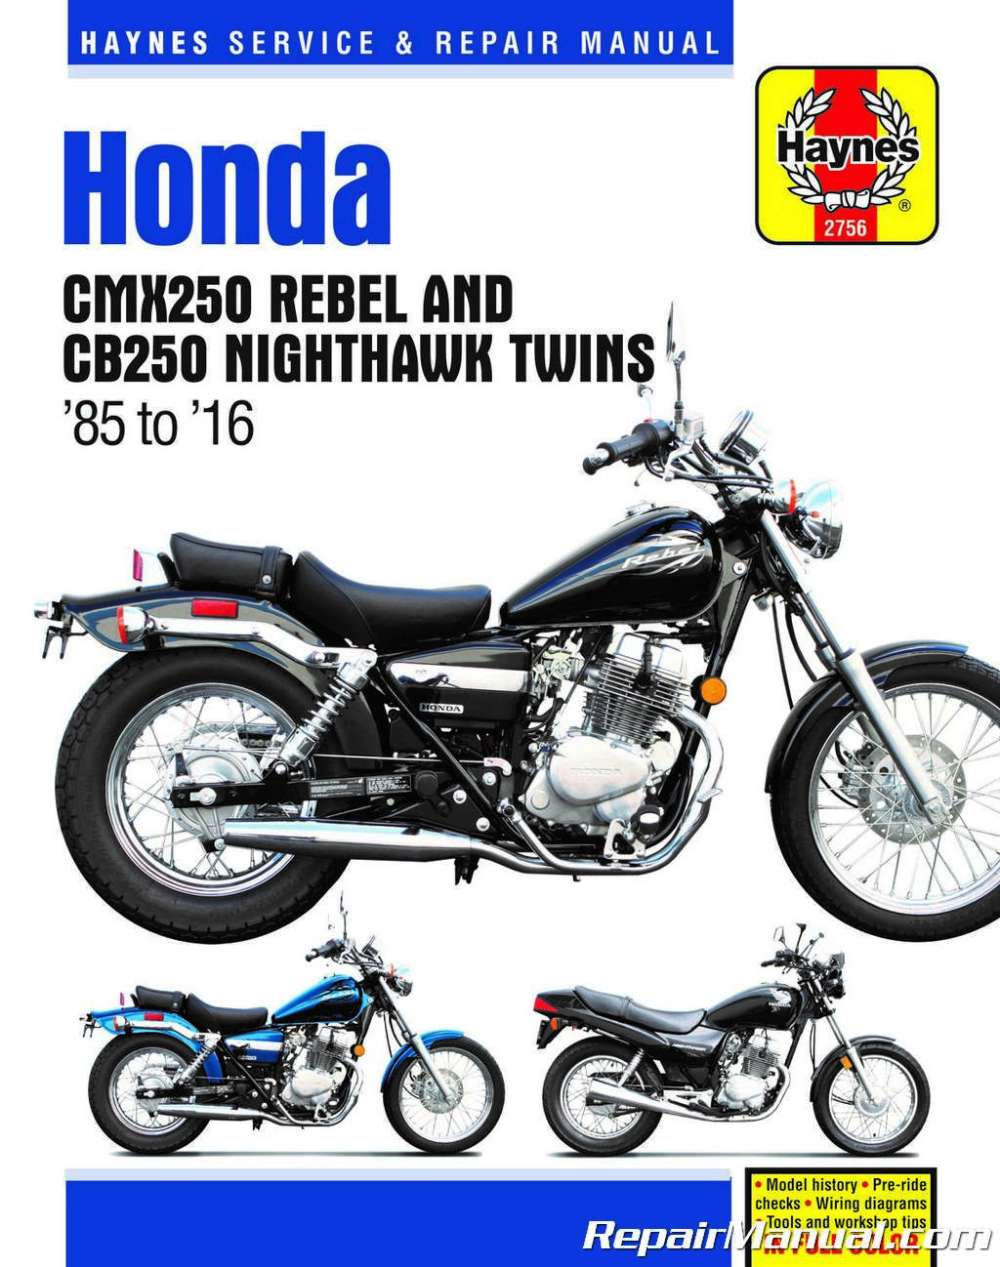 medium resolution of haynes 1985 2016 honda cmx250 rebel cb250 nighthawk twinshaynes 1985 2016 honda cmx250 rebel cb250 nighthawk